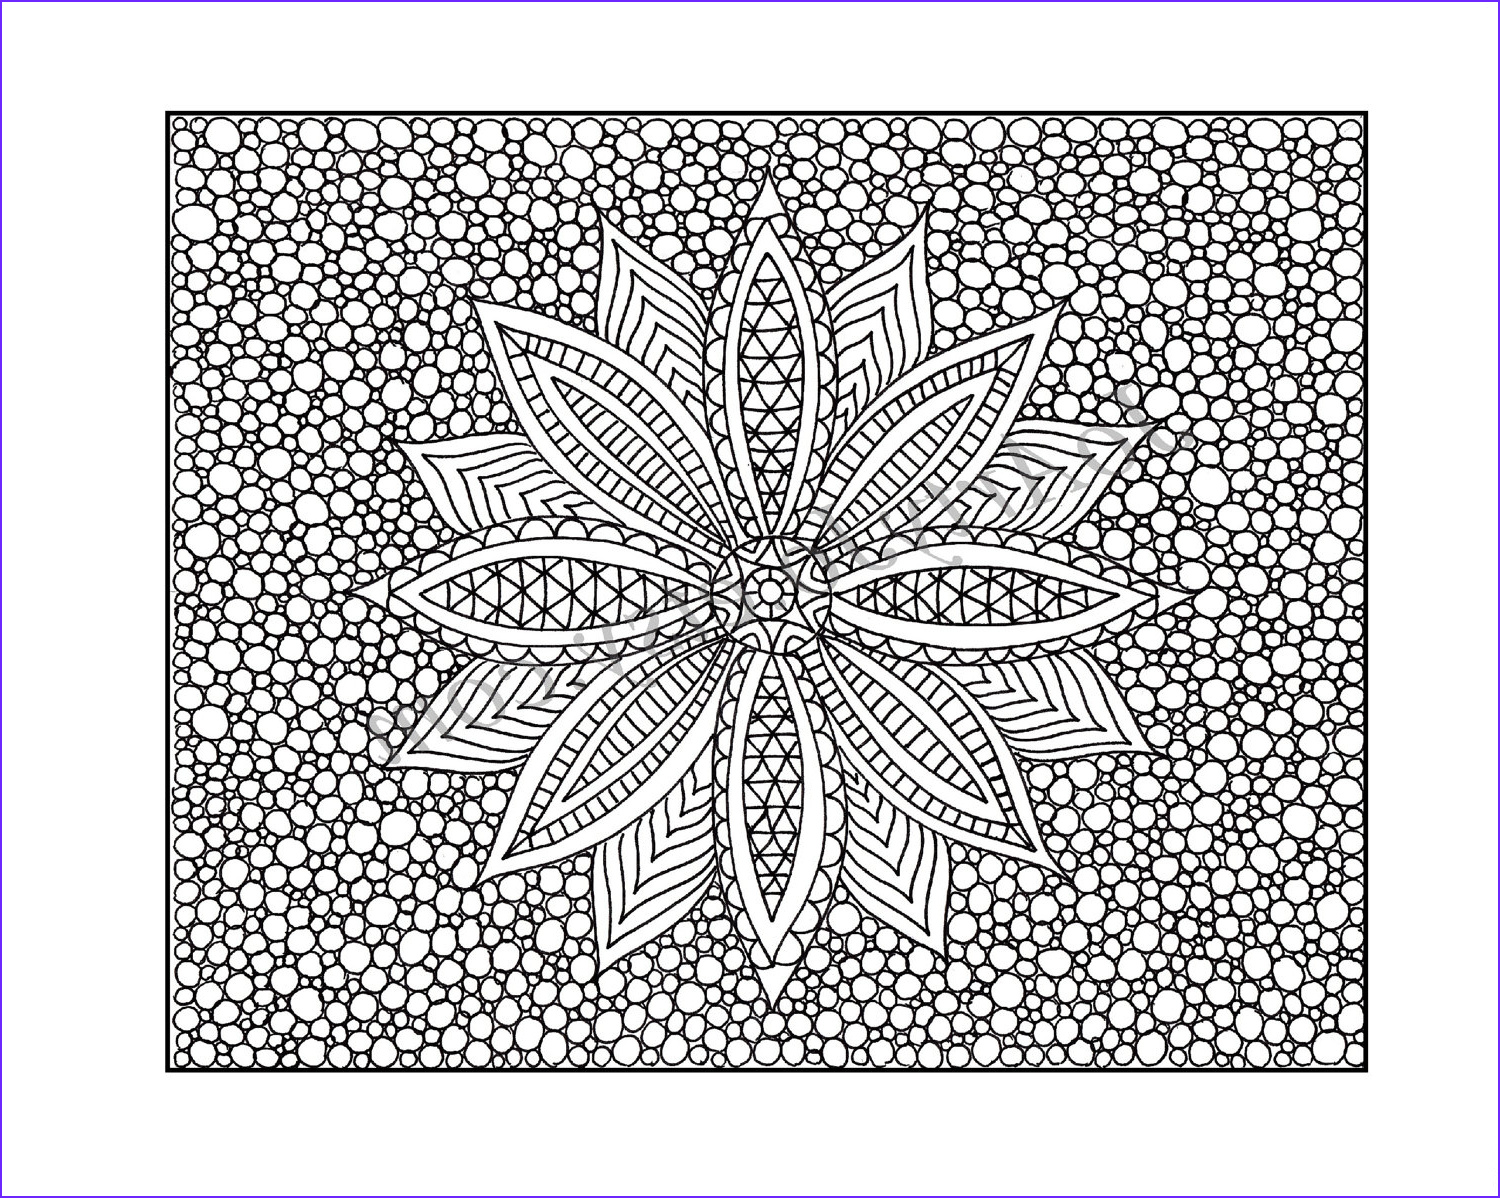 Coloring Art Luxury Photos 52 Free Printable Advanced Coloring Pages Advanced Skill